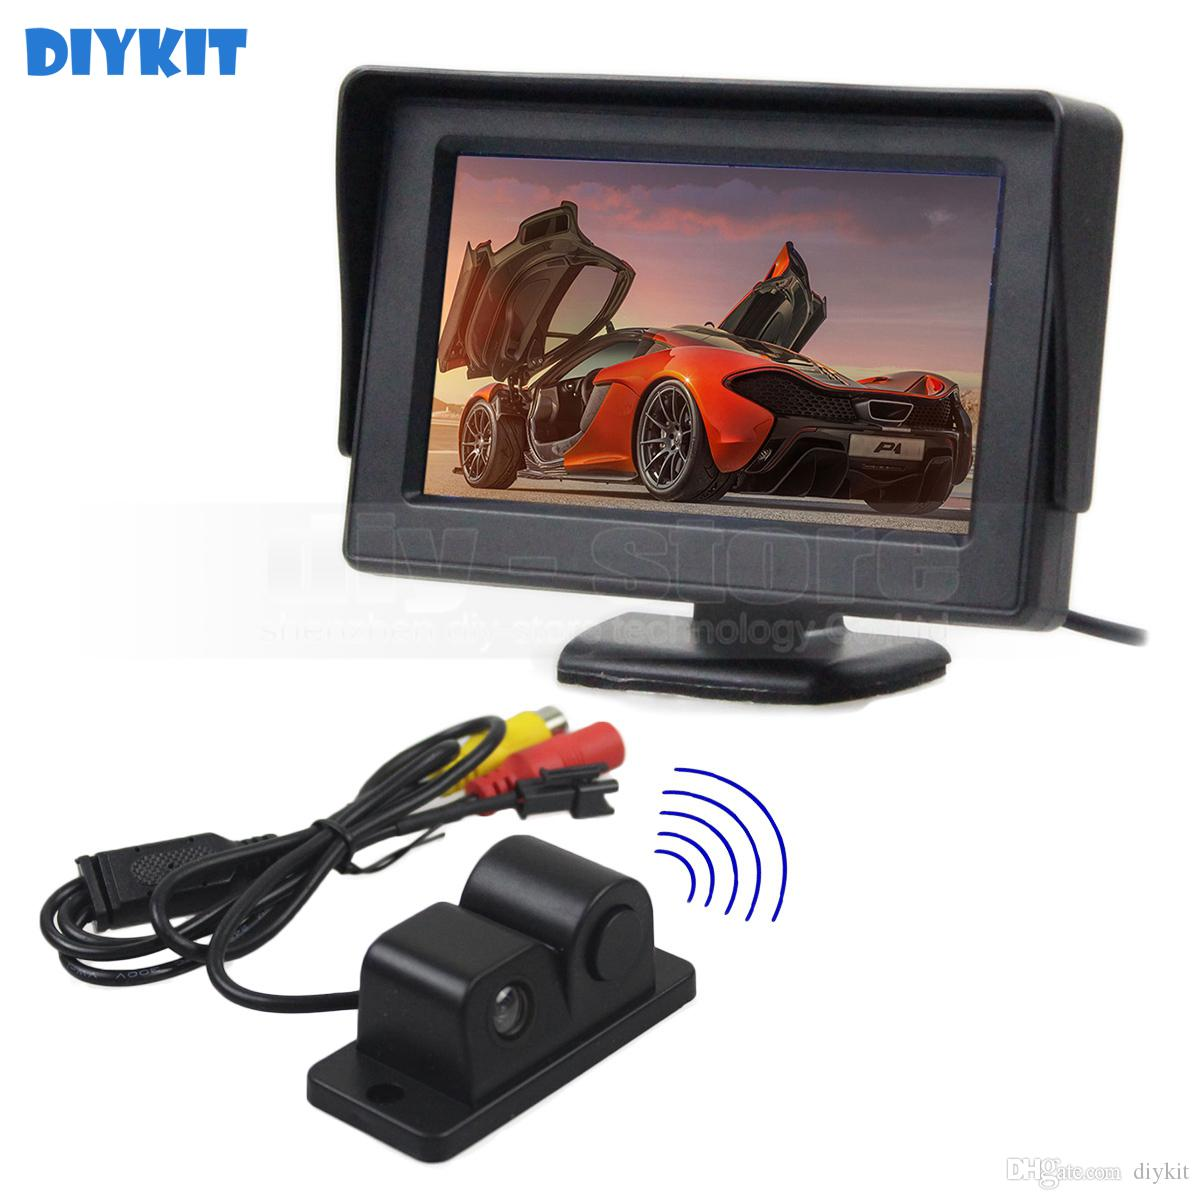 4.3inch Rear View Monitor Car Monitor + Waterproof Parking Radar Sensor Car Camera Parking System Kit 2 in 1